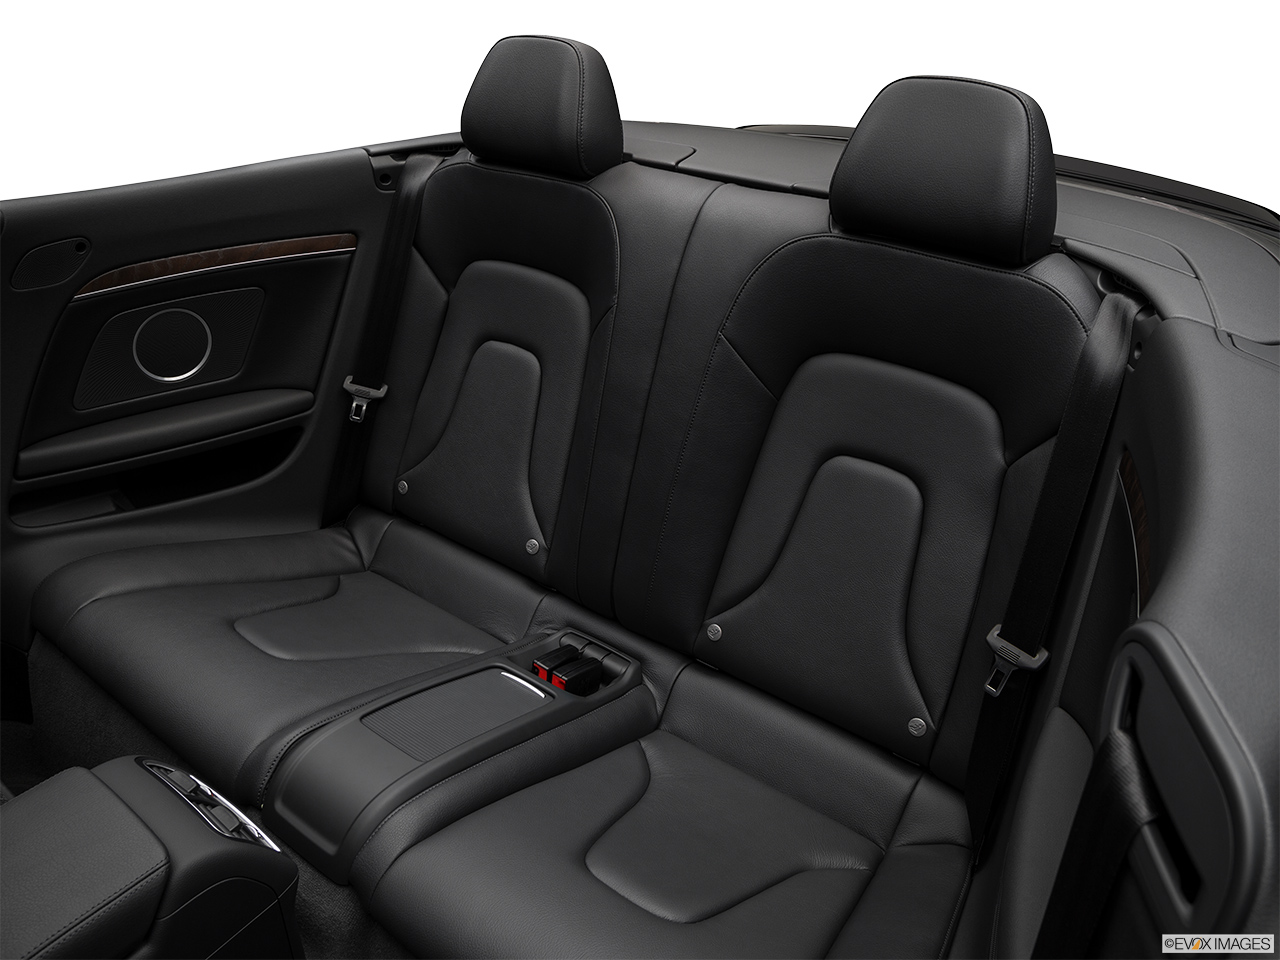 2017 Audi A5 Sport Cabriolet 2.0 TFSI Rear seats from Drivers Side.